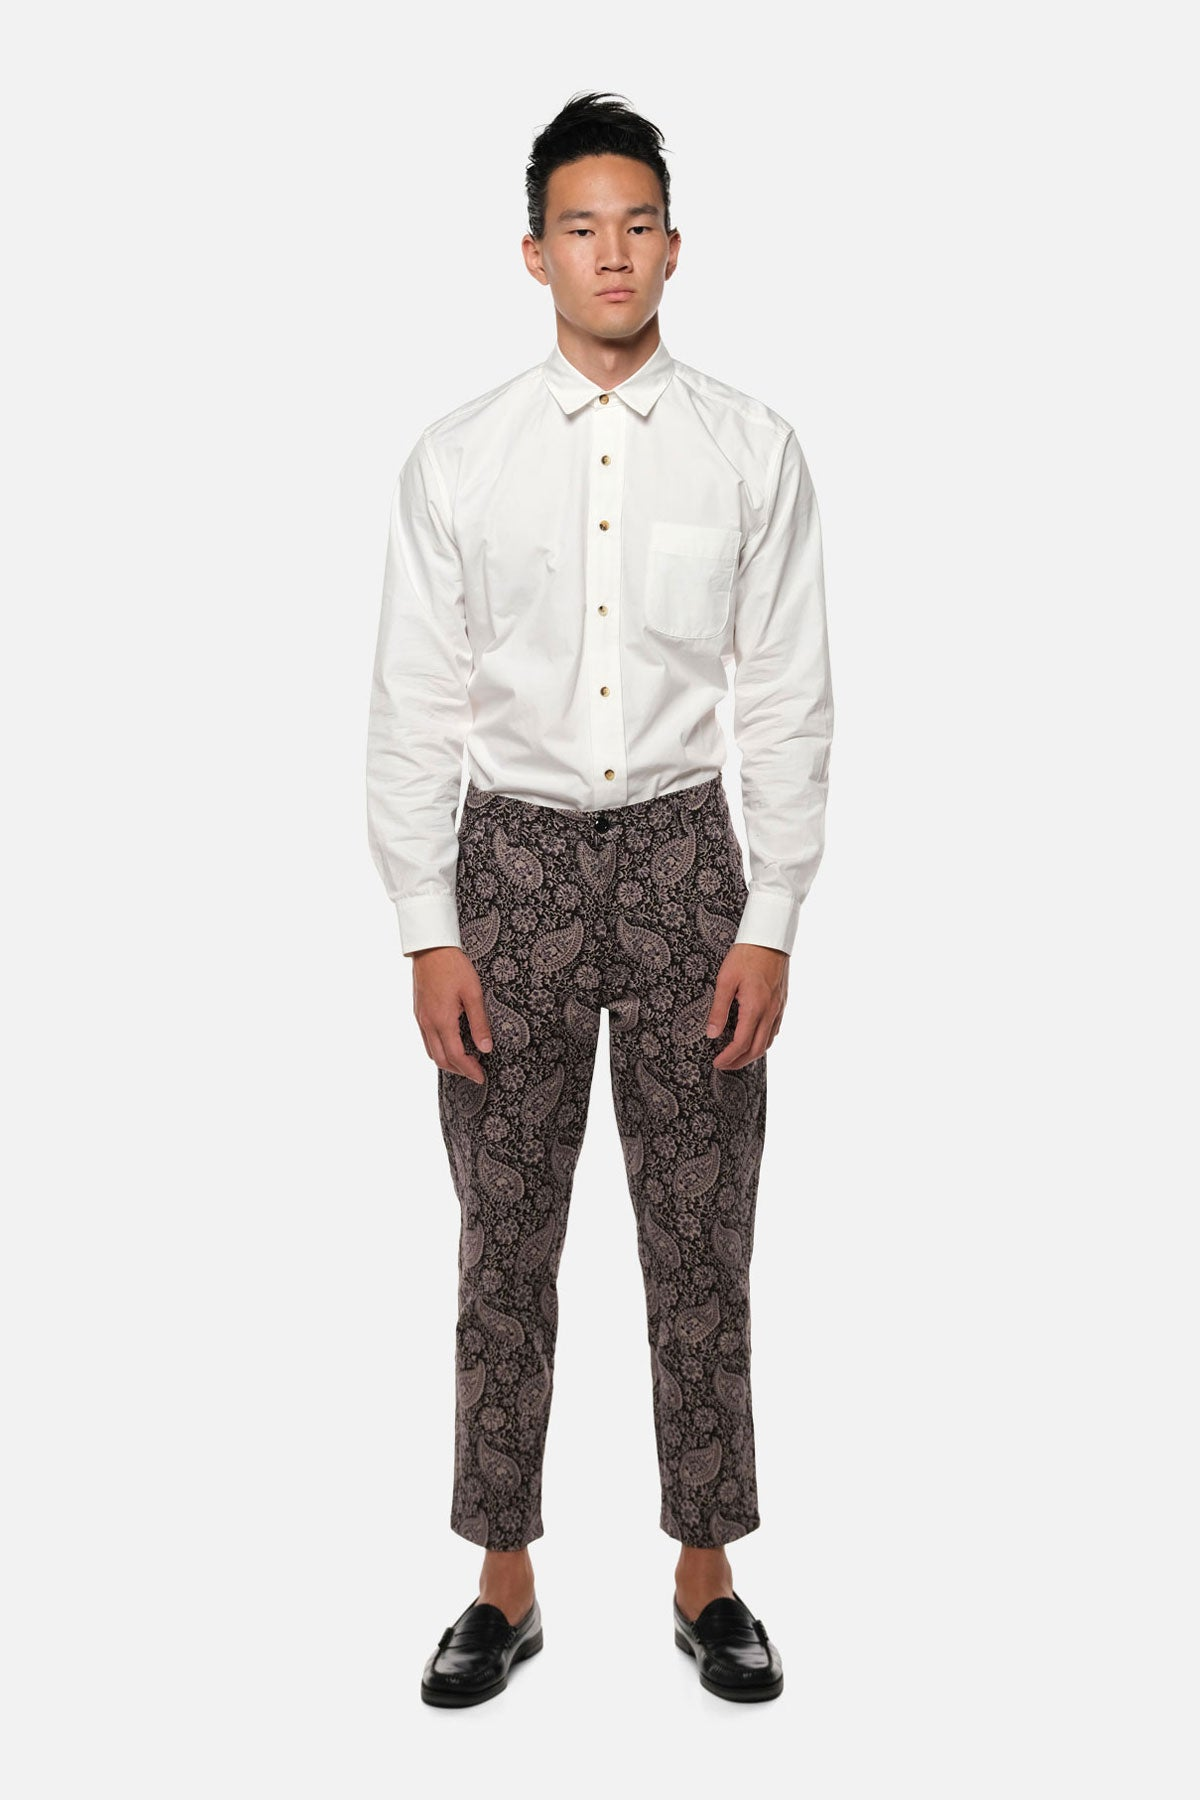 ATLAS TROUSER IN PURPLE PAISLEY - Fortune Goods